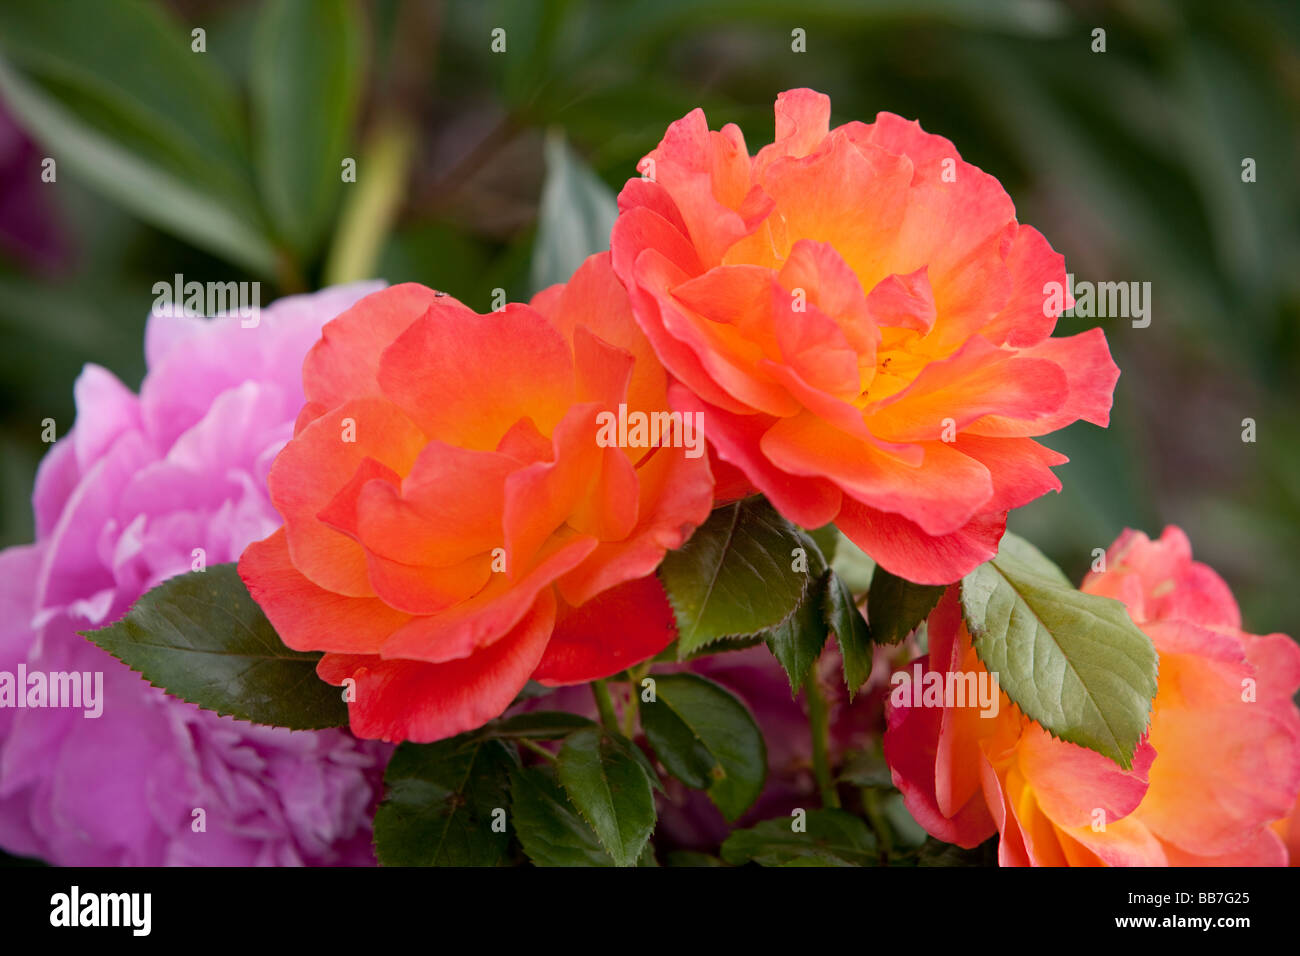 Peony and rose flower - Stock Image